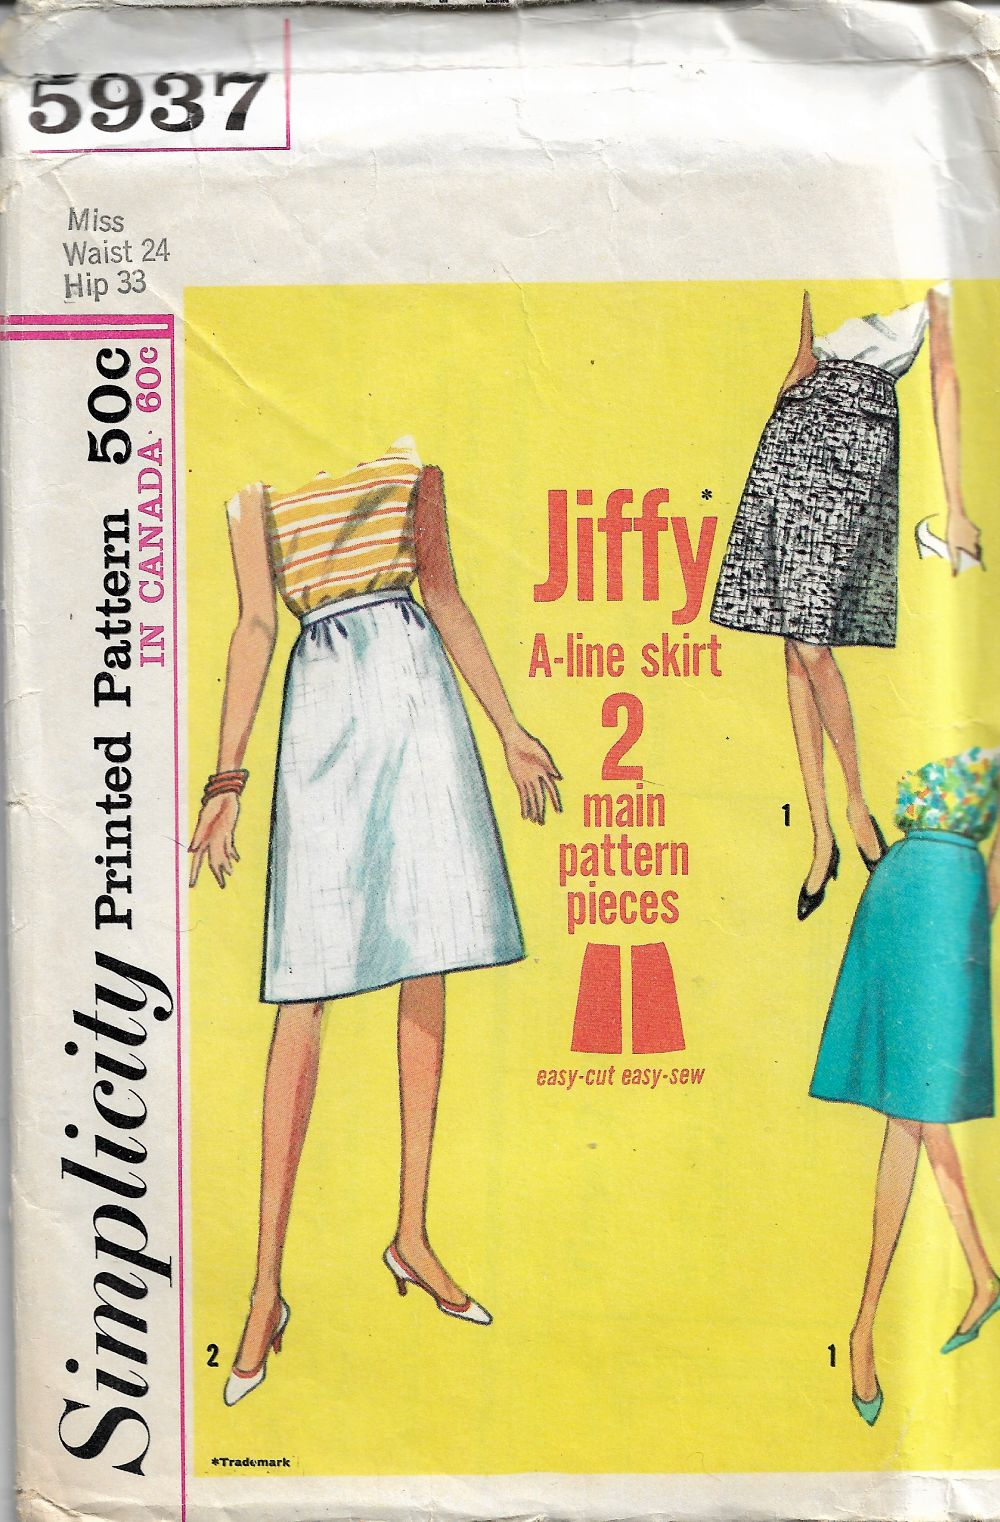 Simplicity 5937 Vintage Sewing Pattern 1960's Misses Jiffy Skirt - VintageStitching - Vintage Sewing Patterns